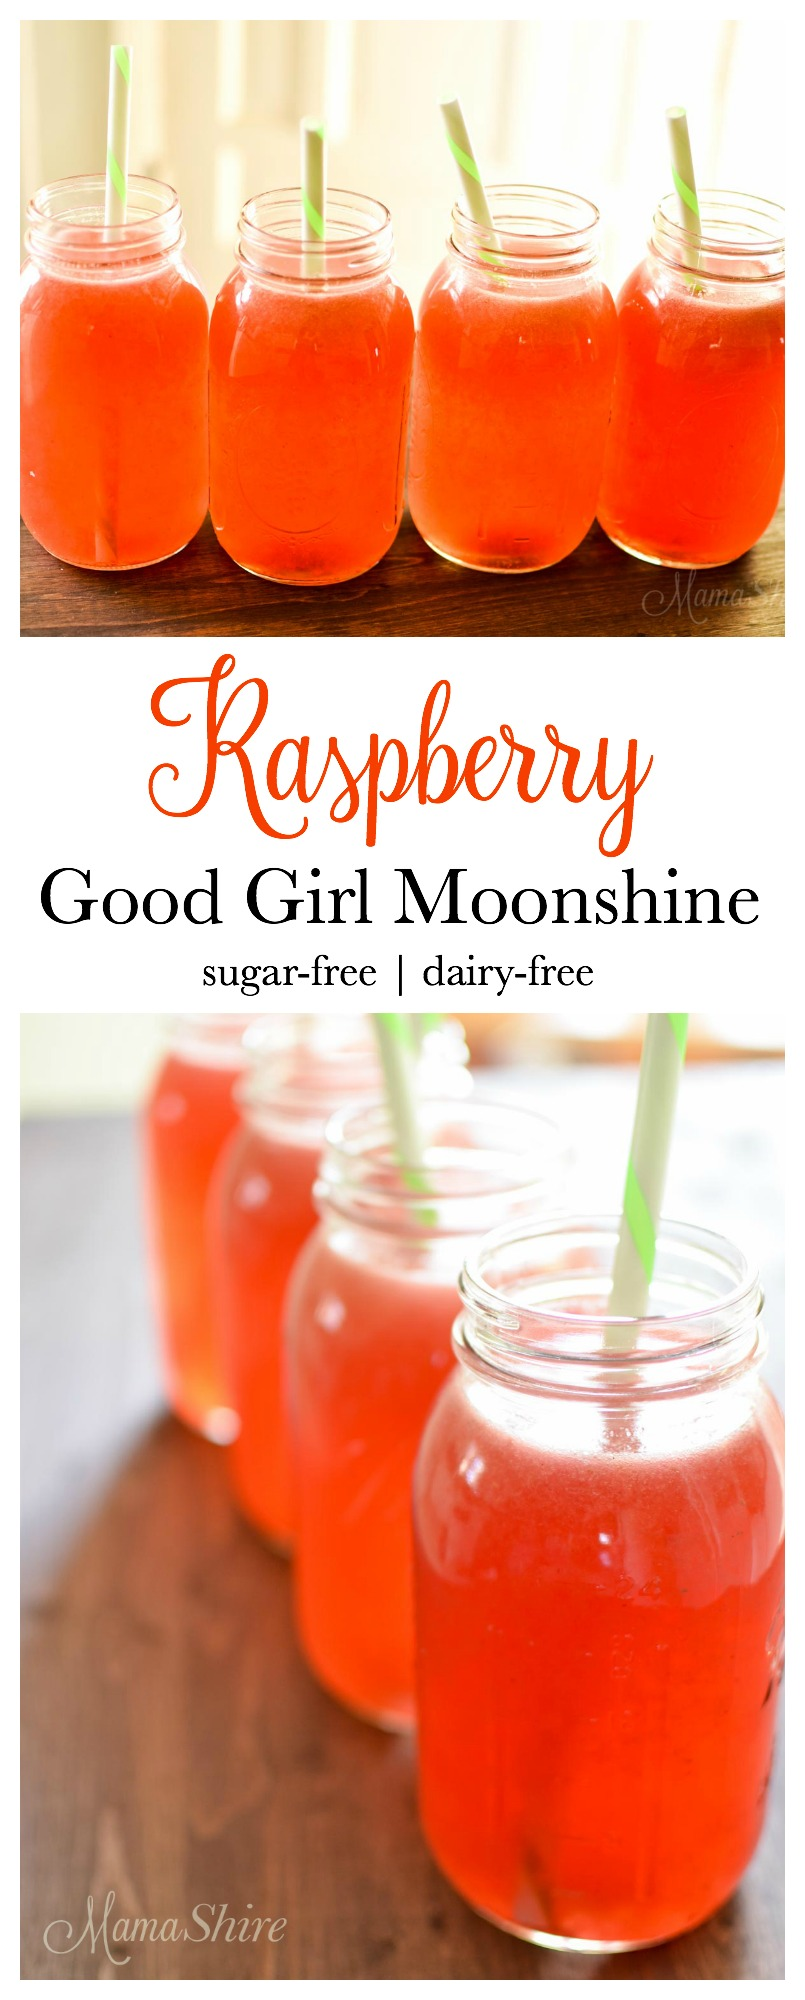 Raspberry Good Girl Moonshine - sugar-free